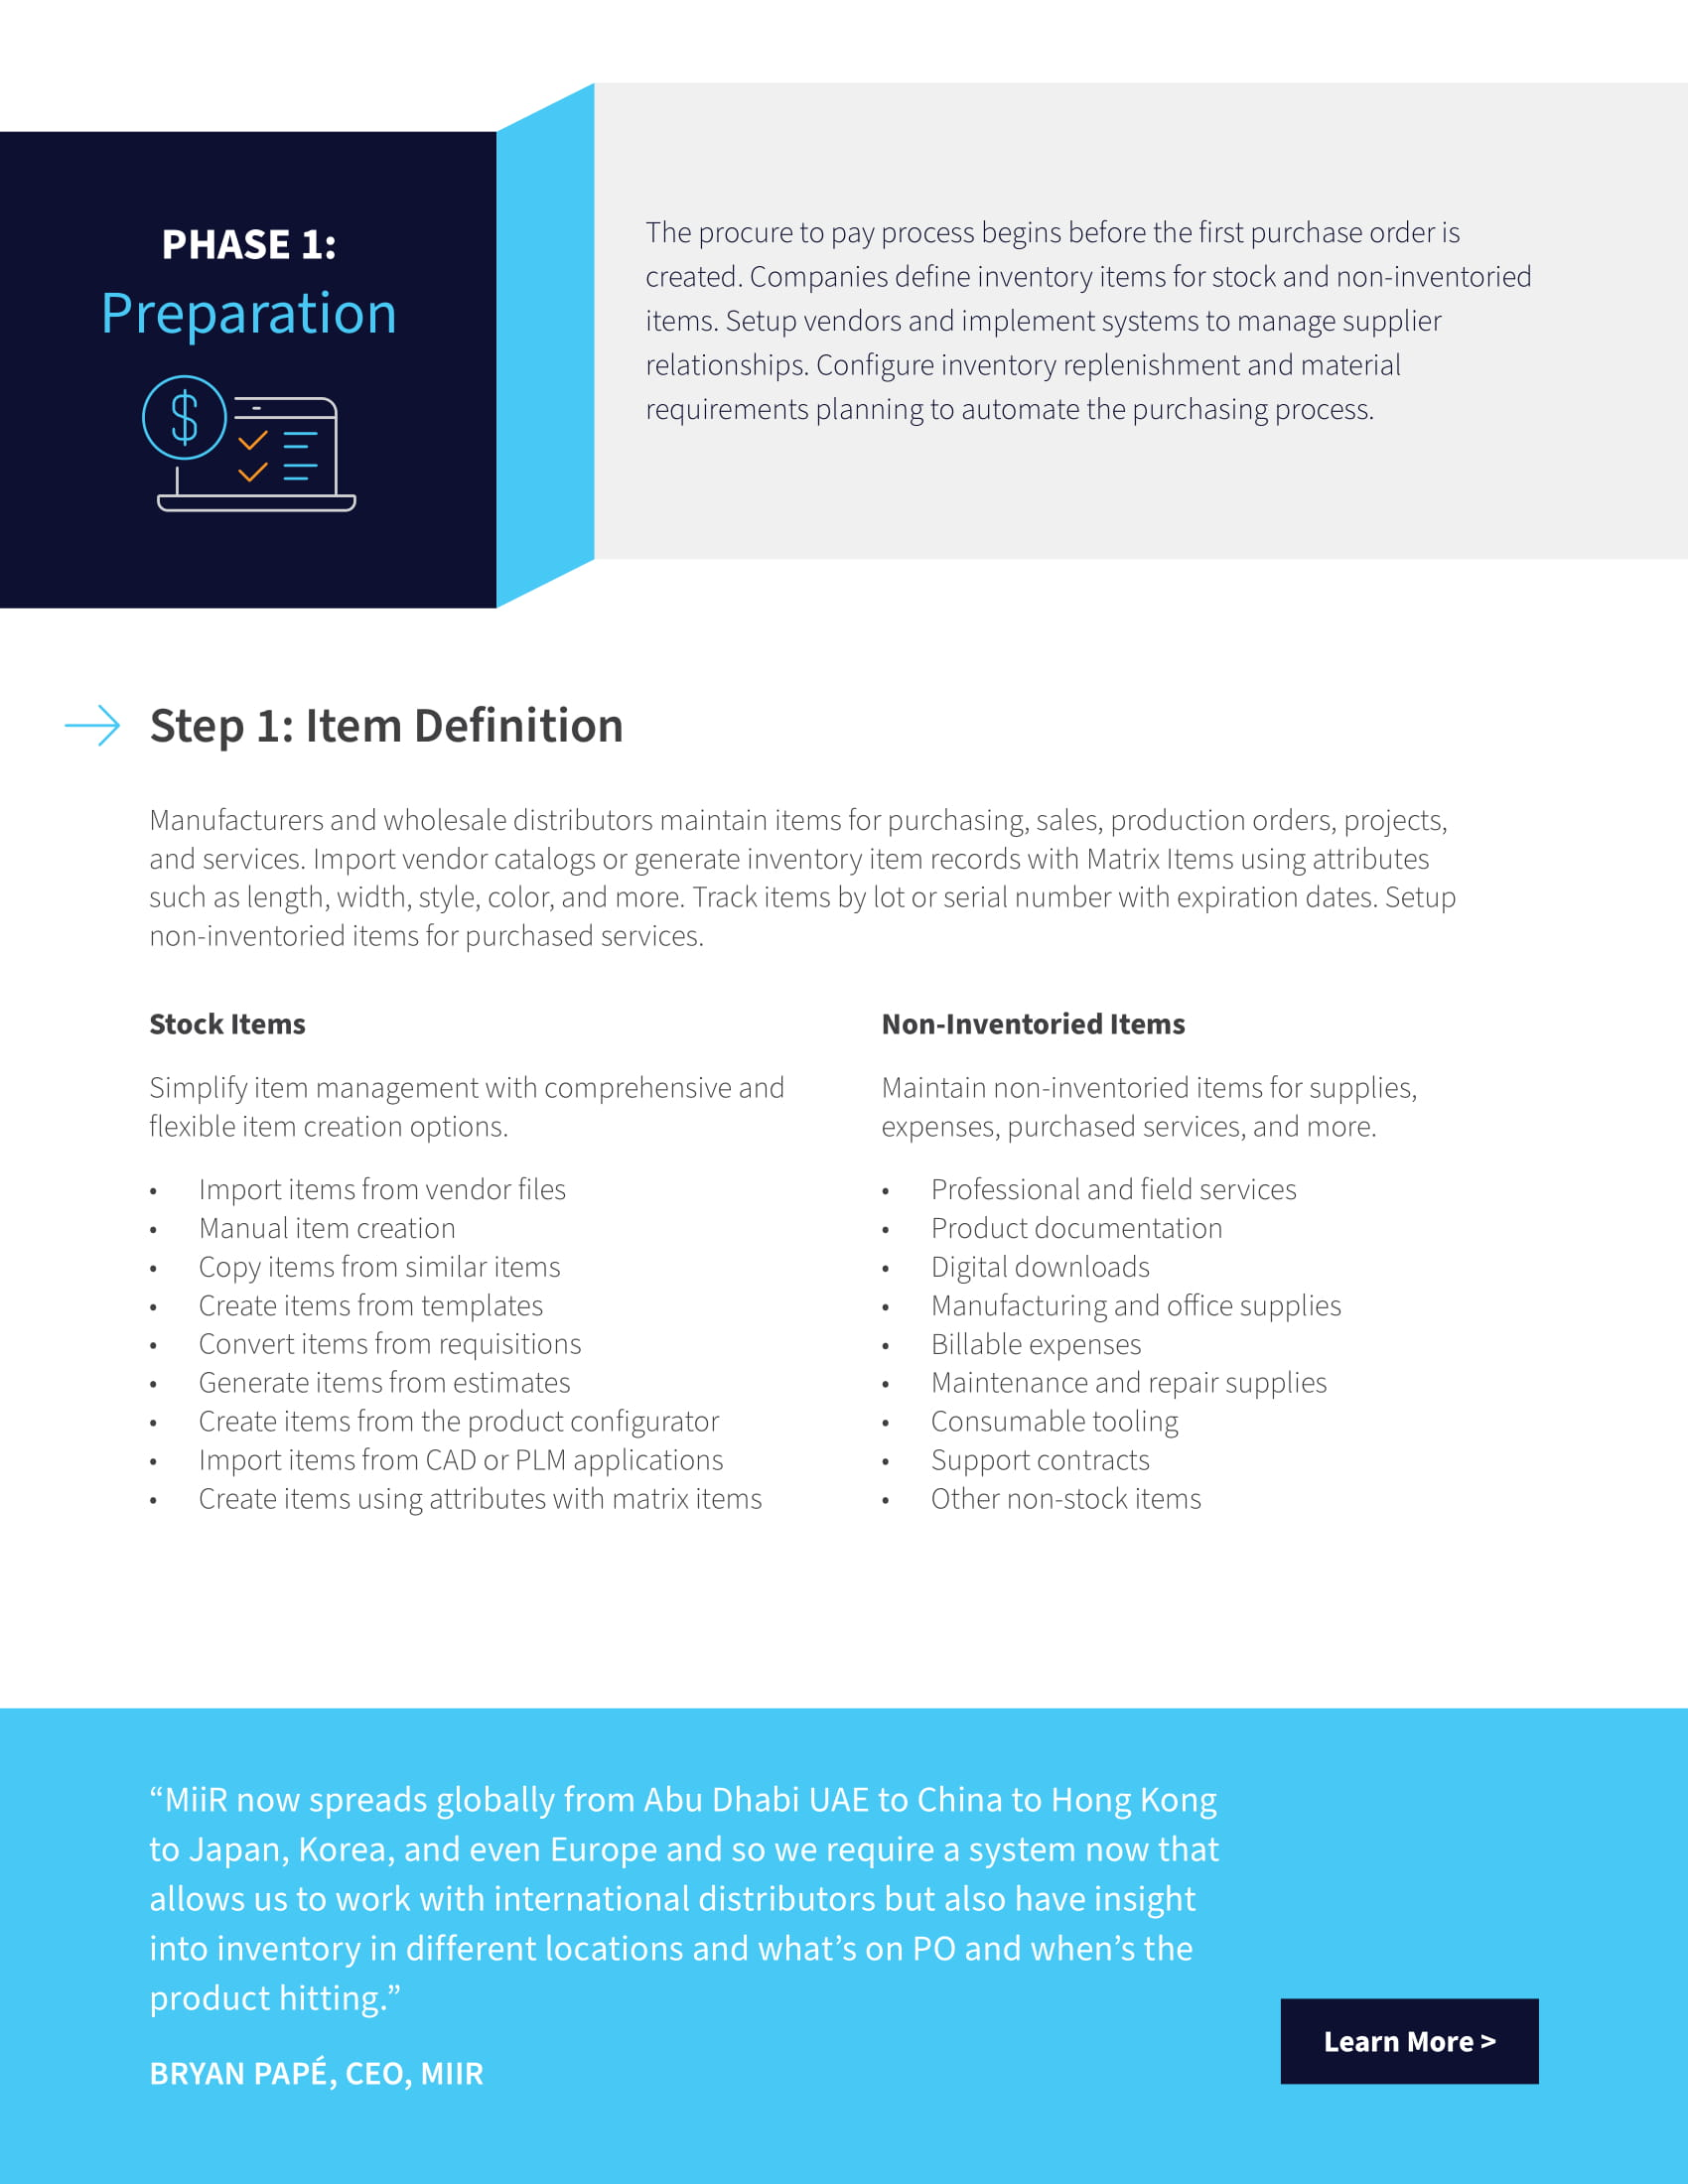 Using Cloud ERP for Procure-to-Pay Automation, page 2